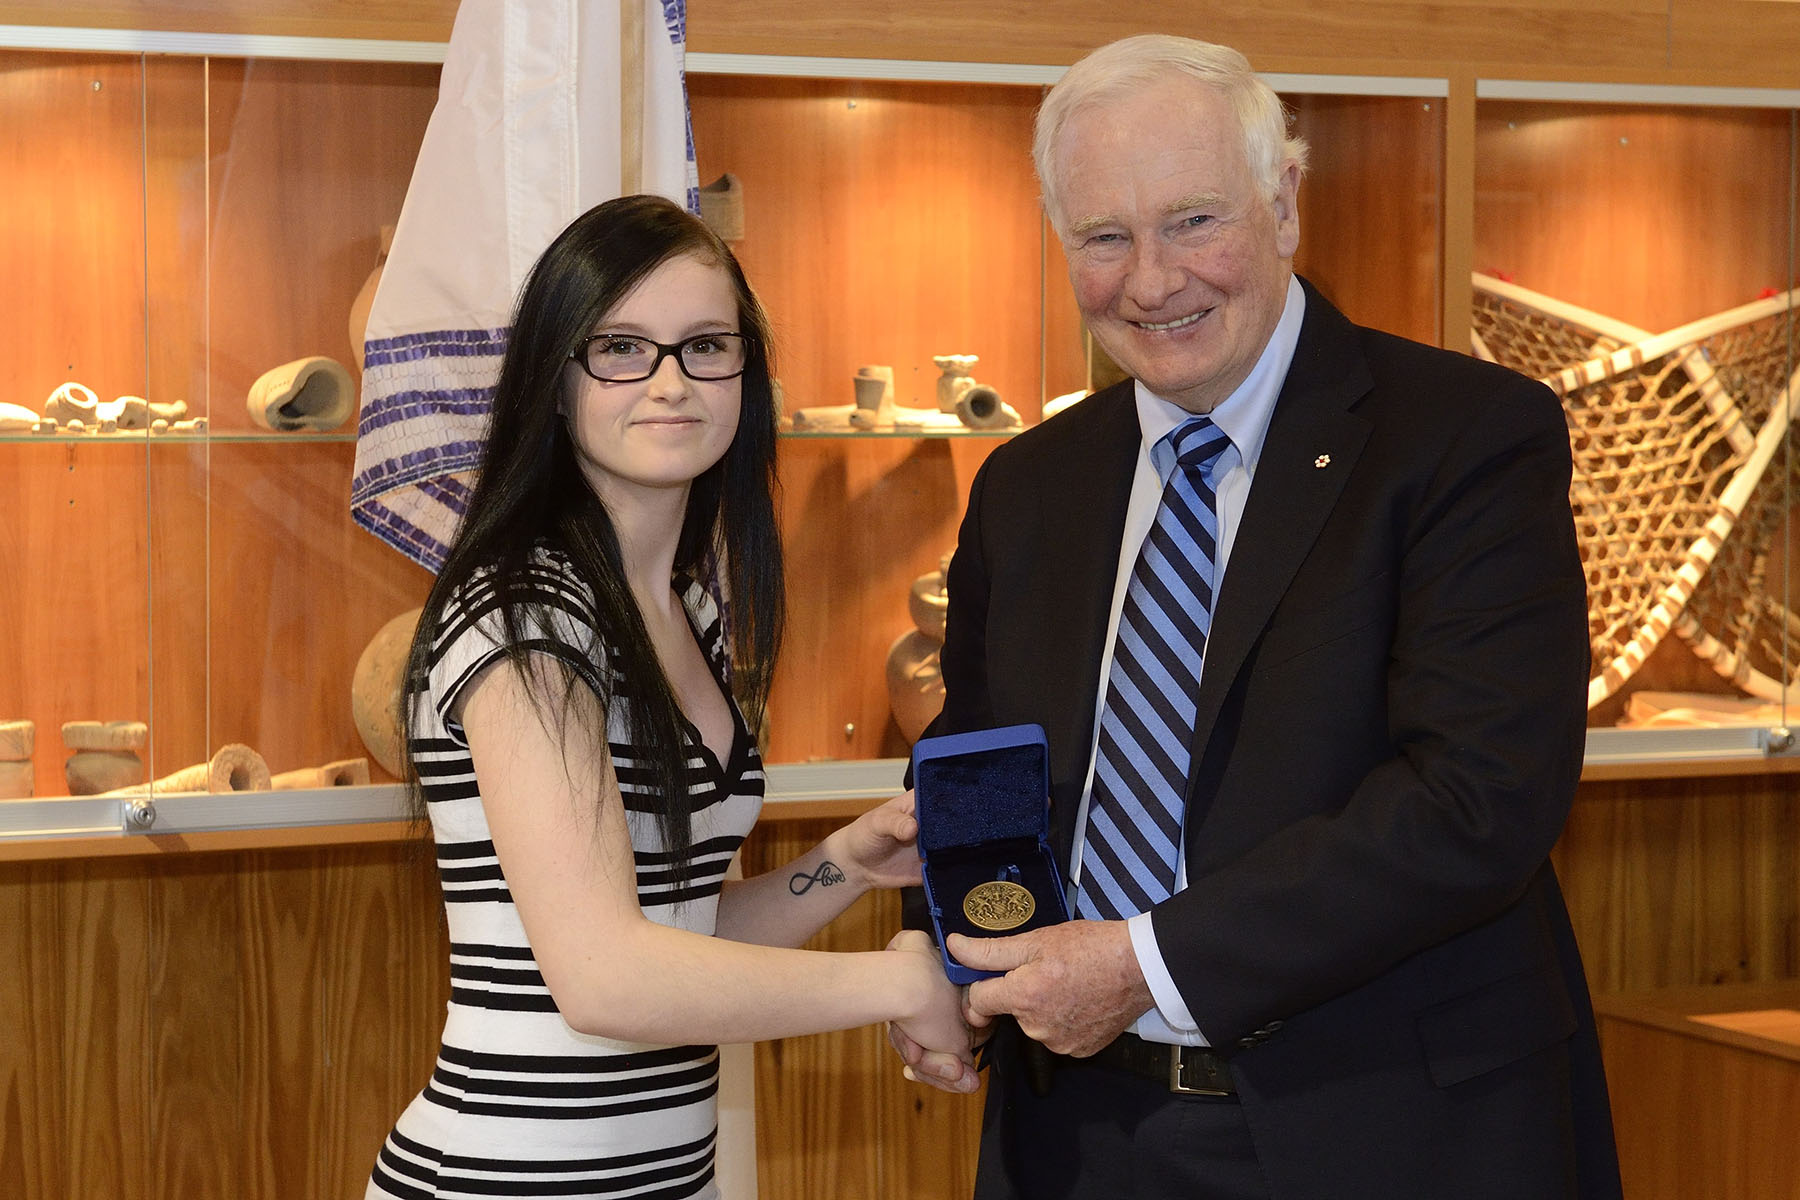 His Excellency presented a Bronze-level Governor General's Academic Medal to Shania Gasse who graduated with the highest average from a secondary-level institution in 2014.